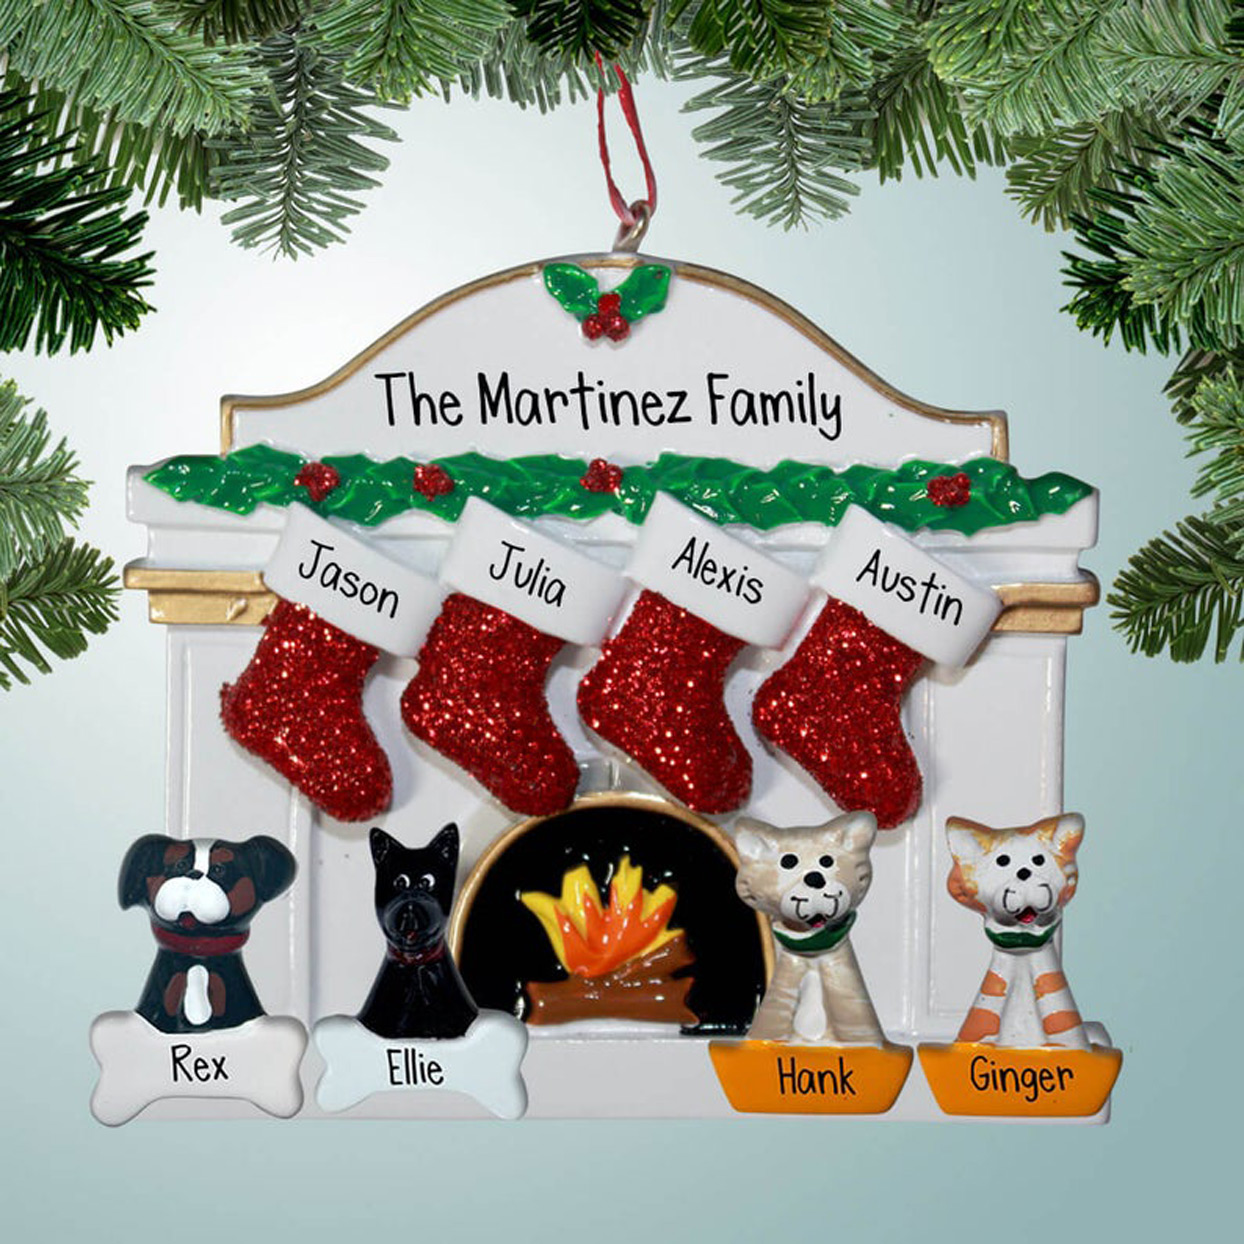 red-stocking-ornament-with-up-to-four-pets